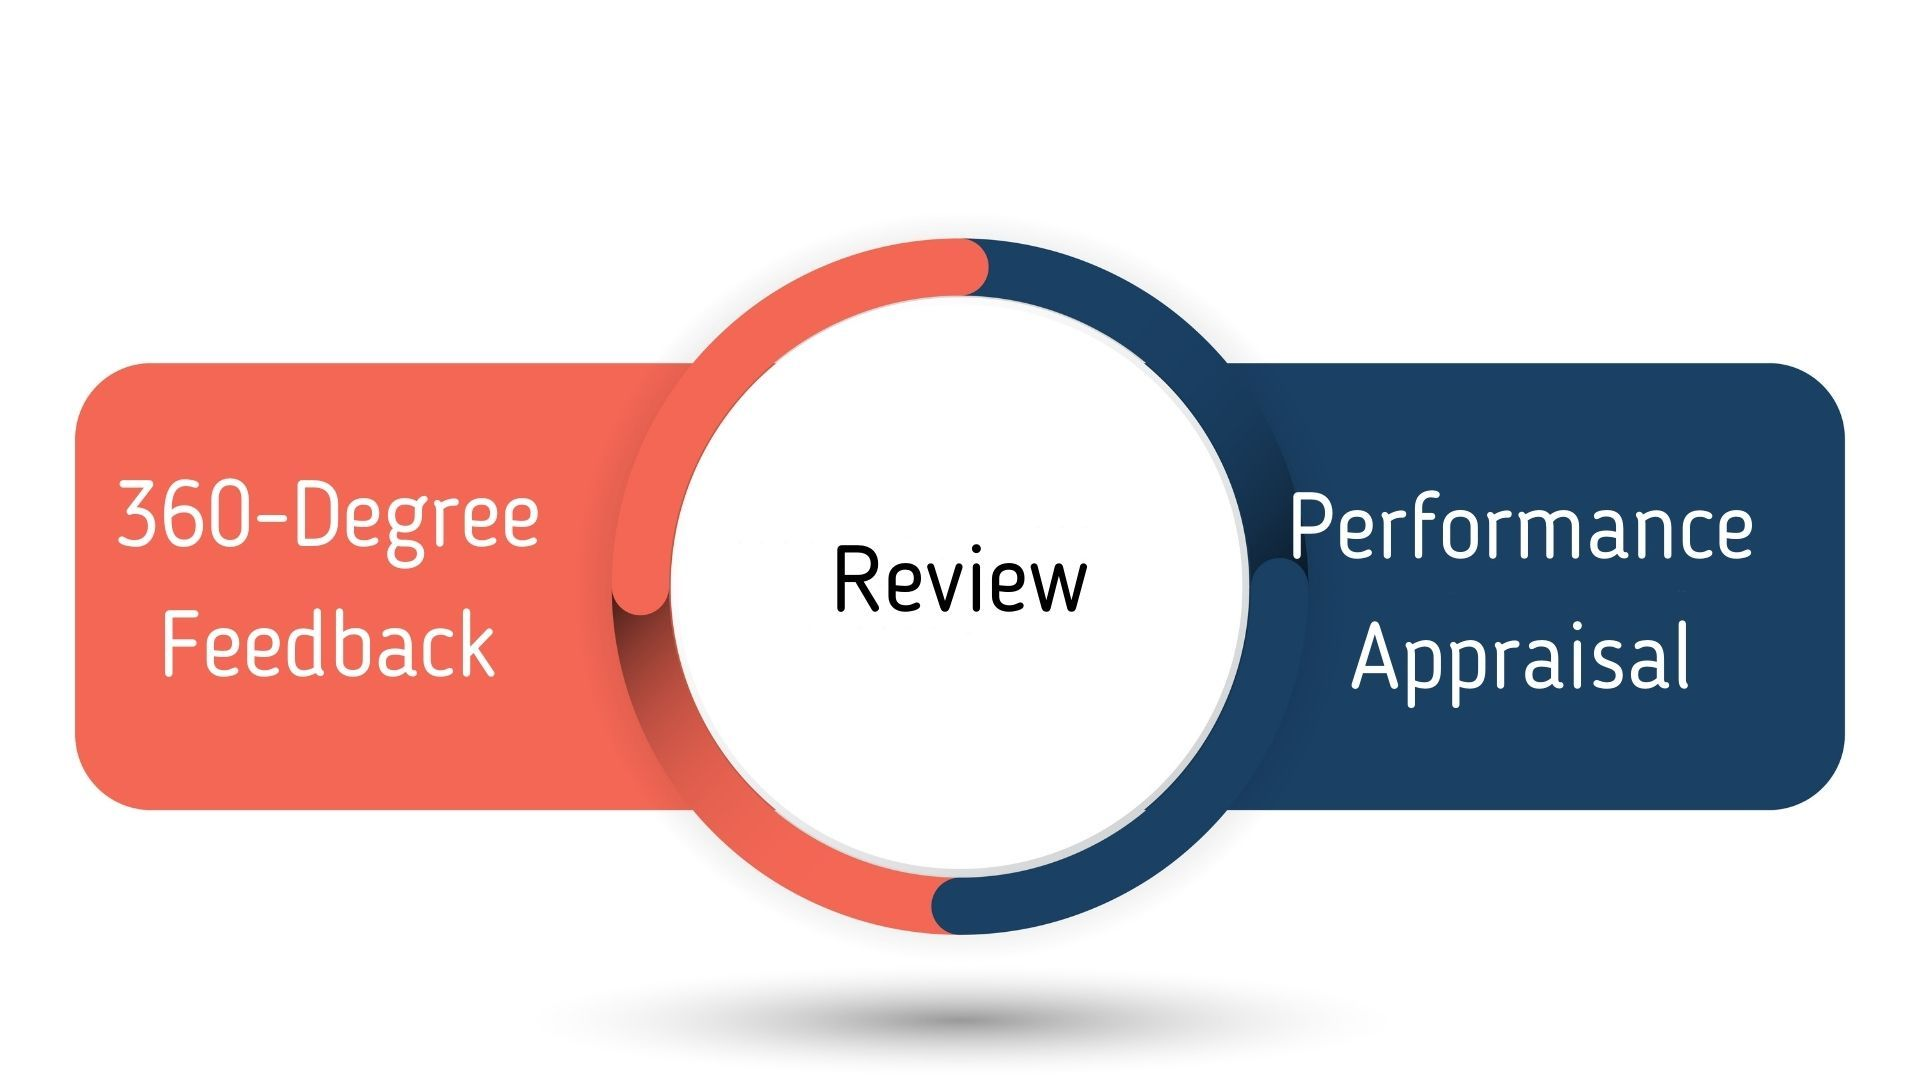 The difference in 360 Degree Feedback, Review, and Appraisal